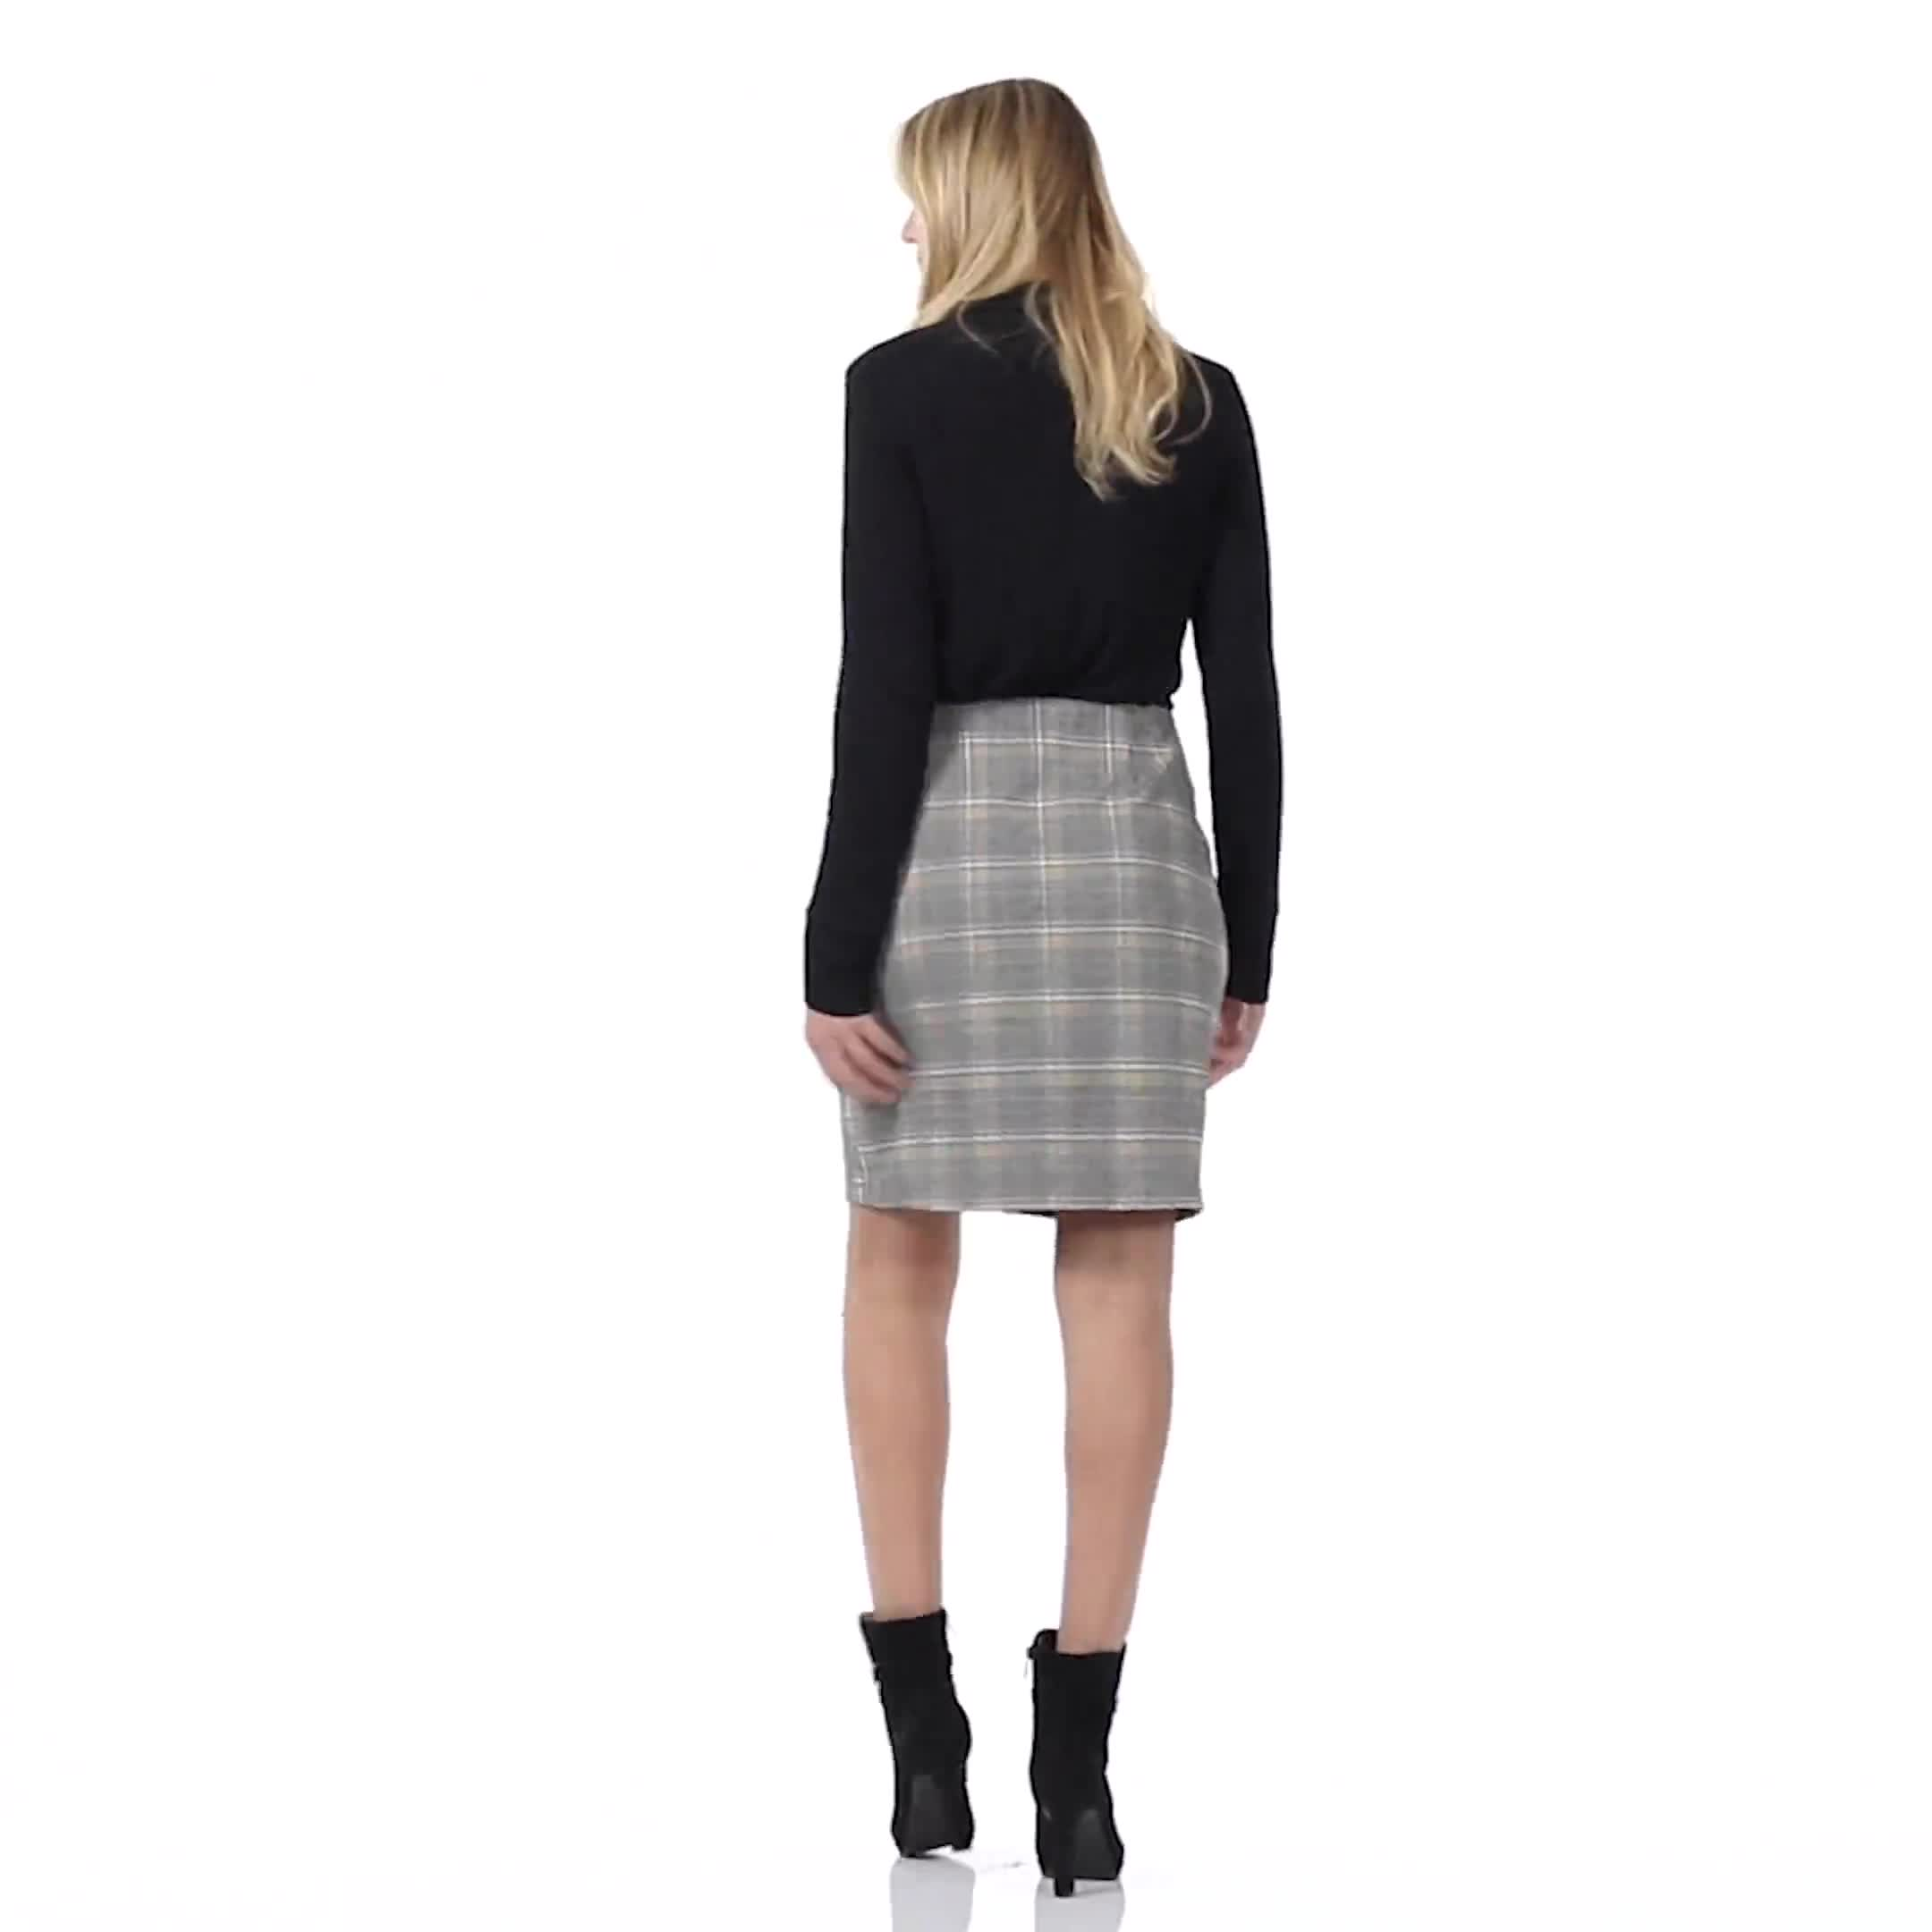 Plaid A Line Skirt with Patch Pockets - Video